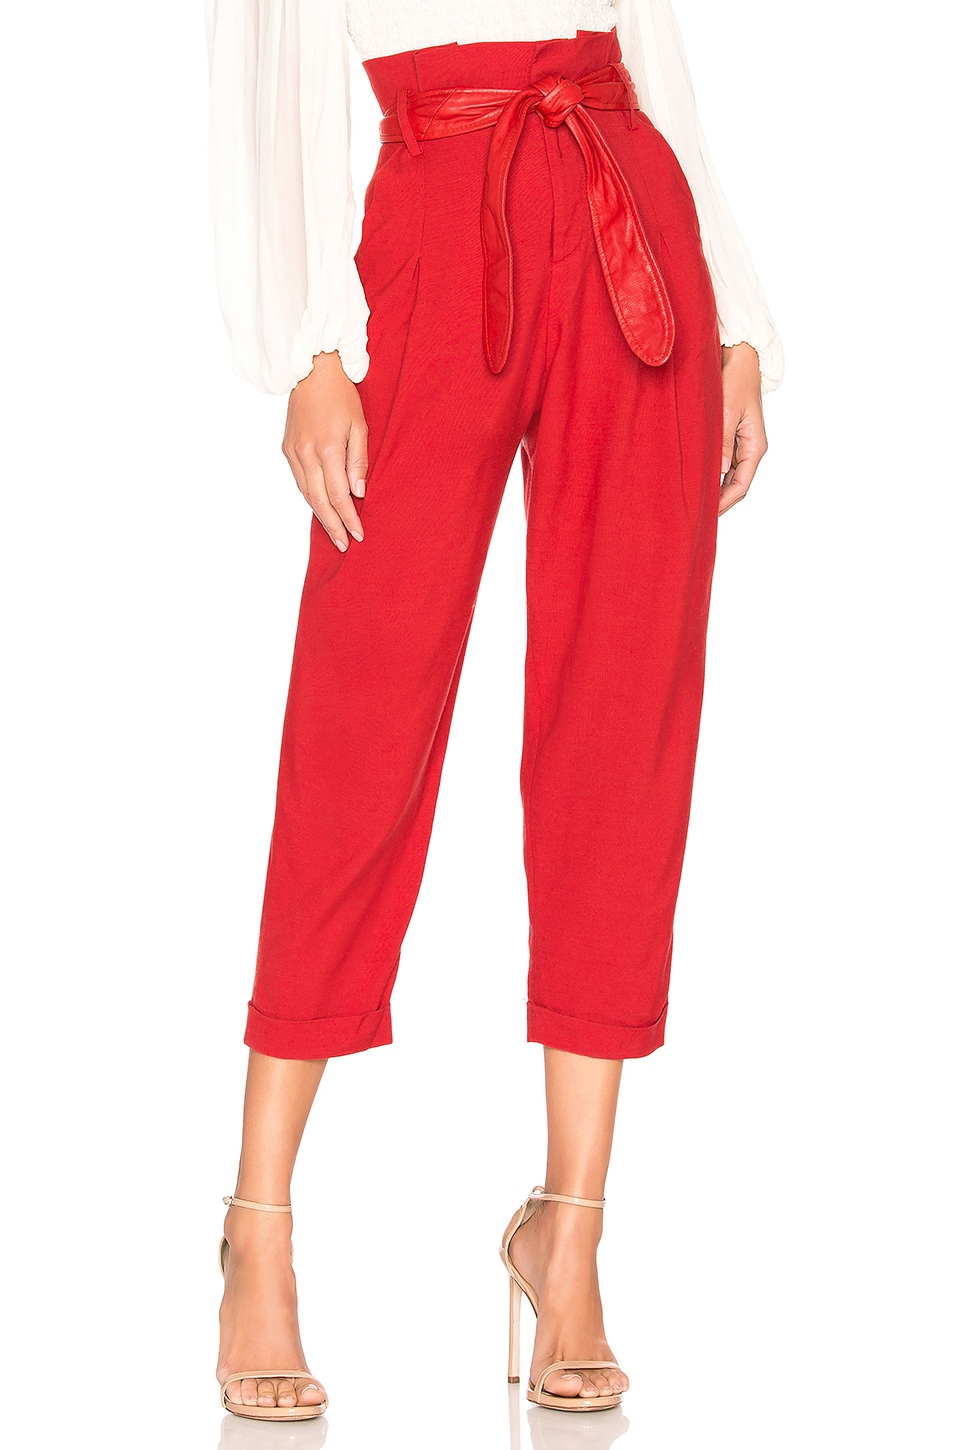 Marissa Webb Anders Pant in Cardinal Red